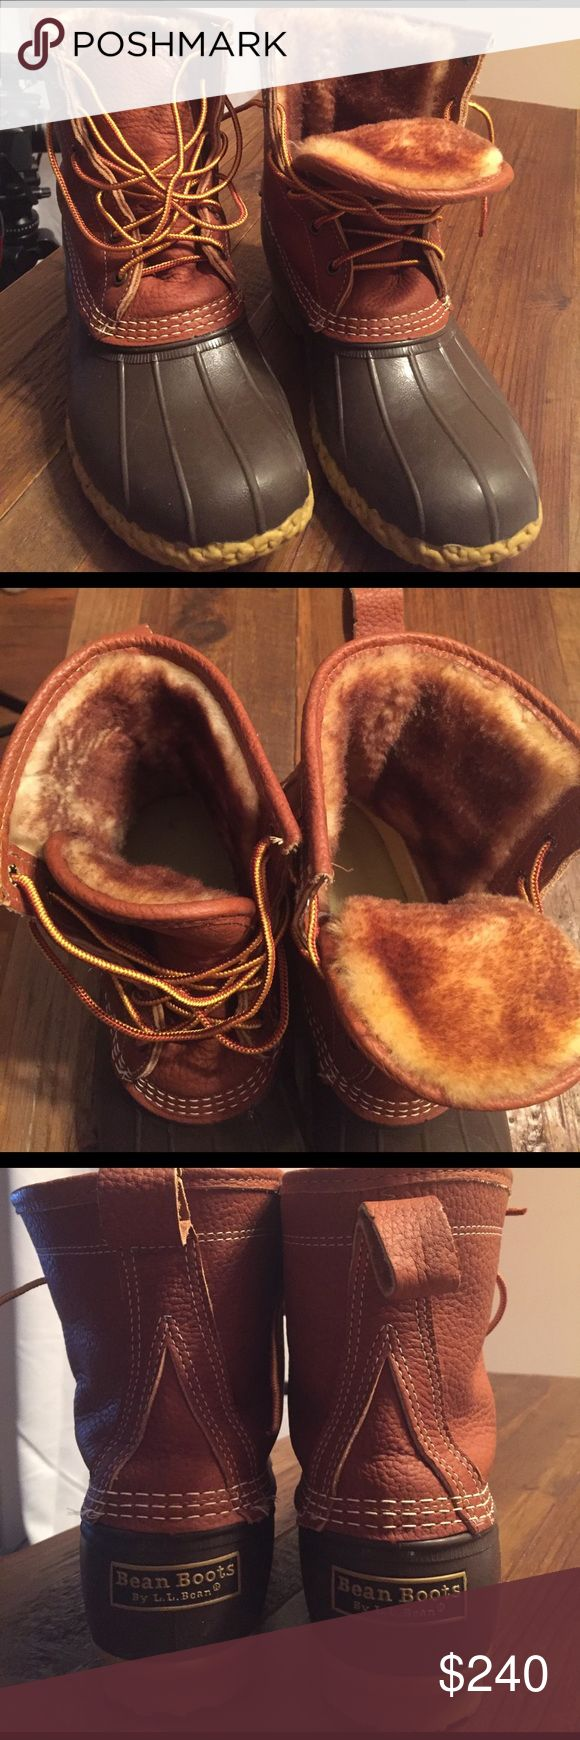 """Women's Tumbled-Leather LL Bean Boots Women's Tumbled-Leather LL Bean Boots, 8"""" Shearling-Lined, 9 W. Excellent condition! I love them bought them a size too big. My loss your gain! L.L. Bean Shoes Winter & Rain Boots"""